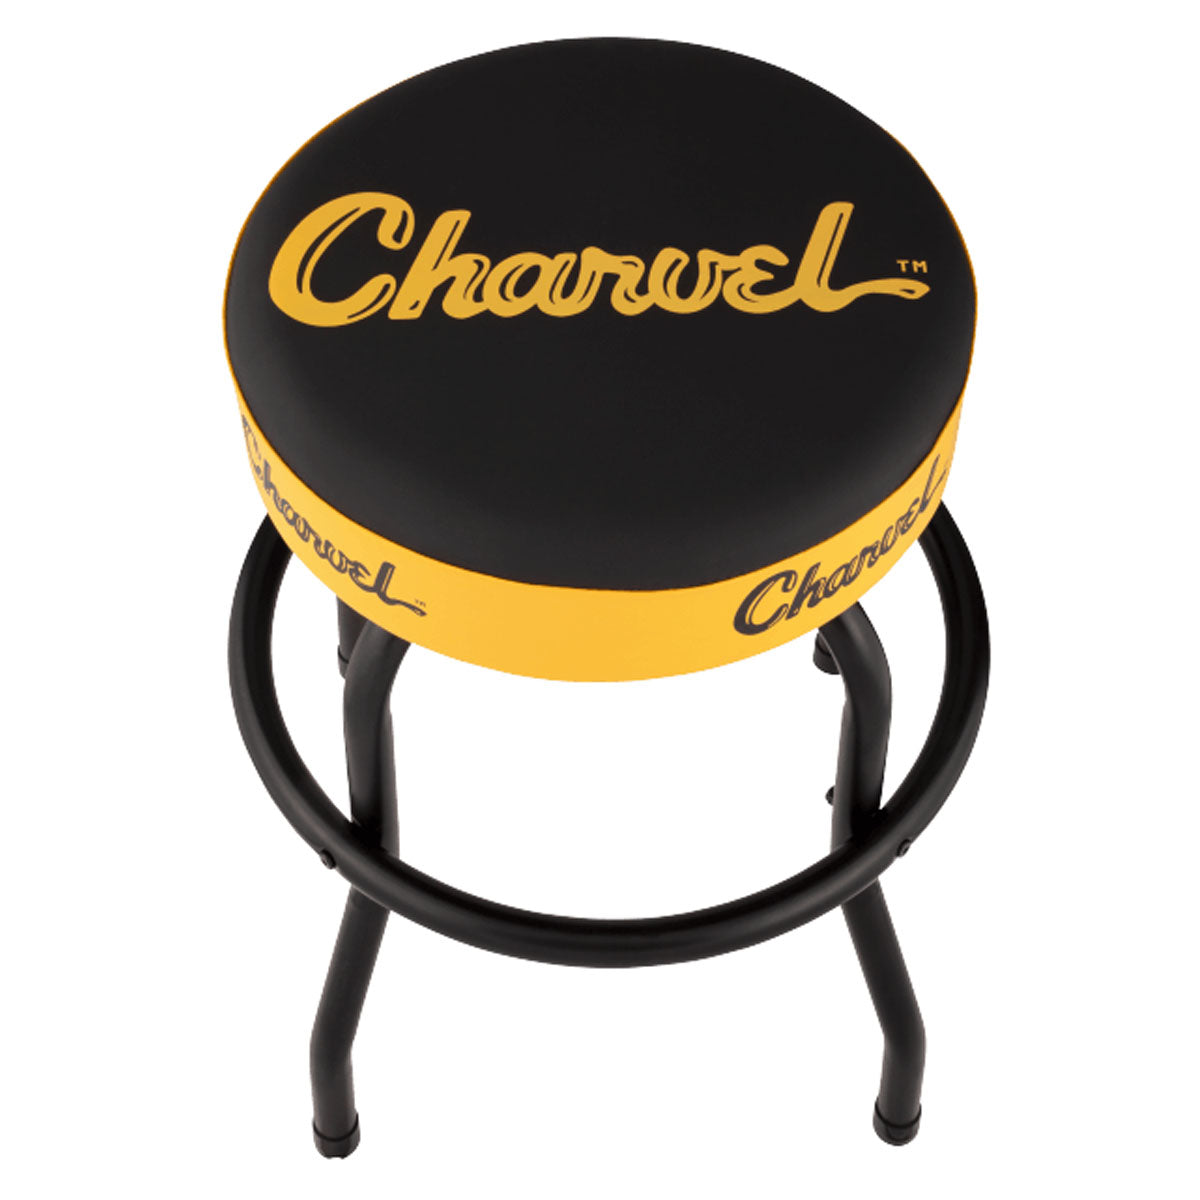 Charvel Toothpaste Logo Guitar Stool 24inch Barstool, Black & Yellow - 9922827024